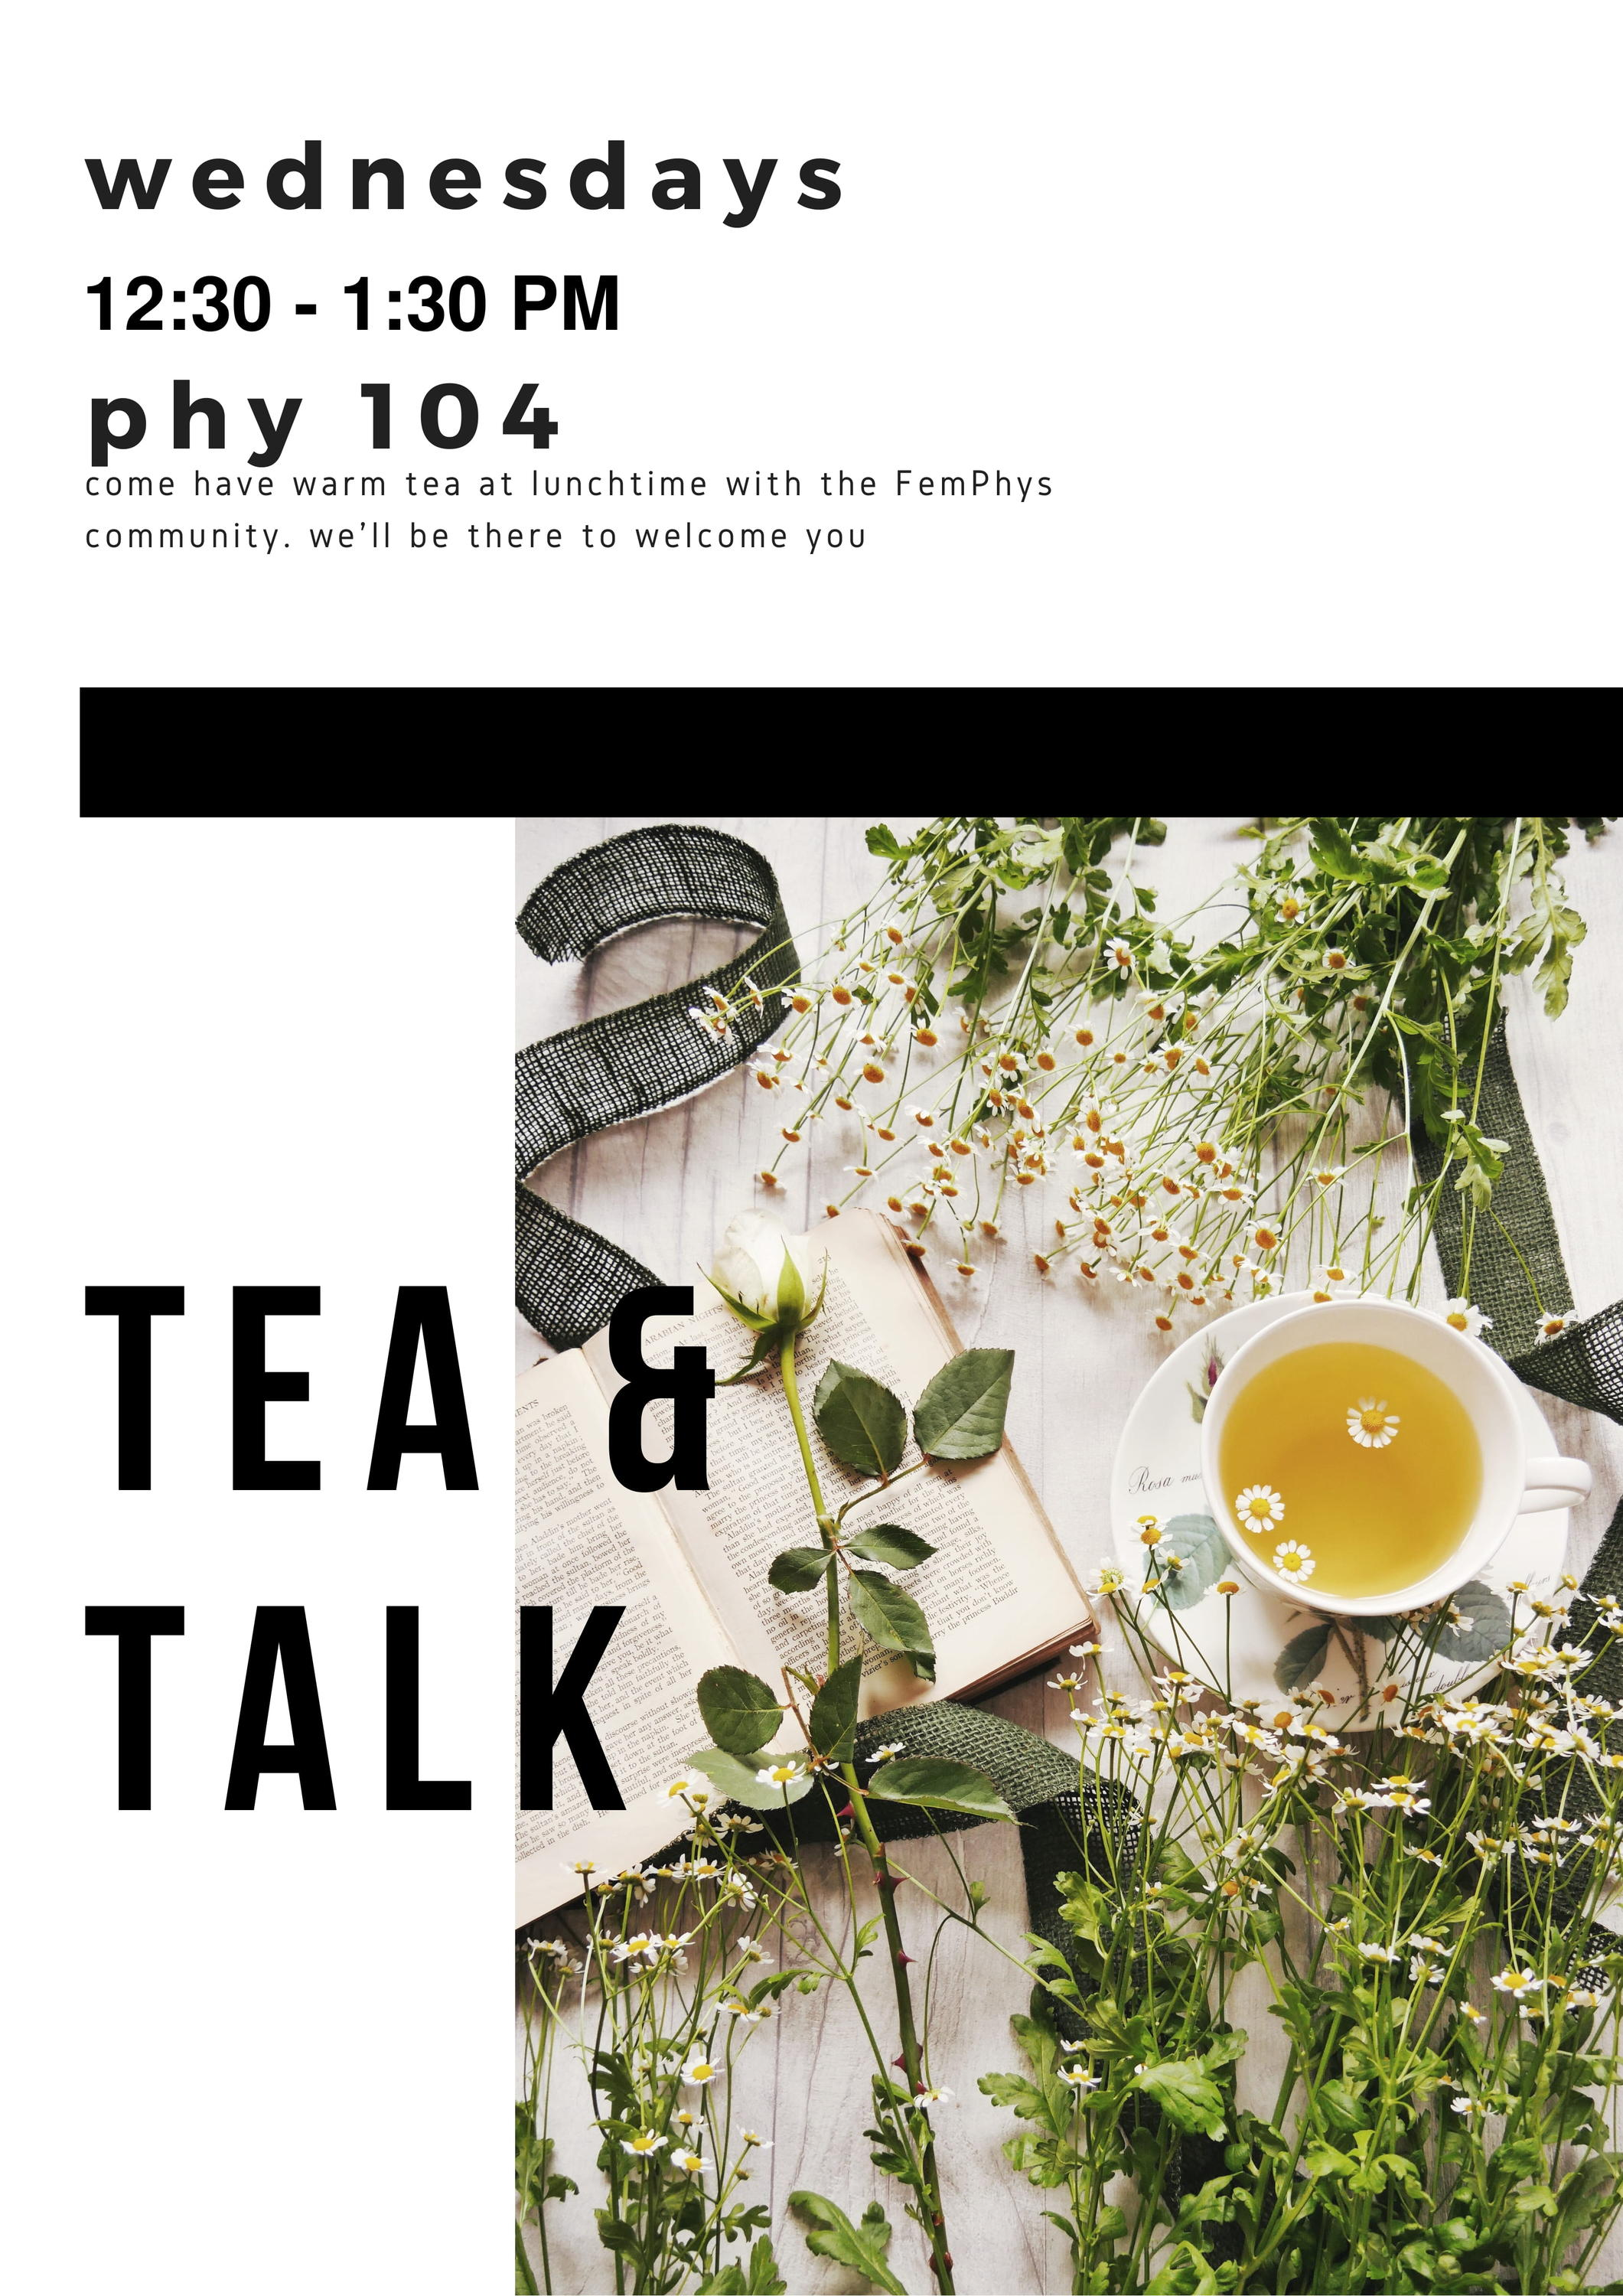 FemPhys Tea & Talk Wednesdays 12:30-1:30 pm Phys 104